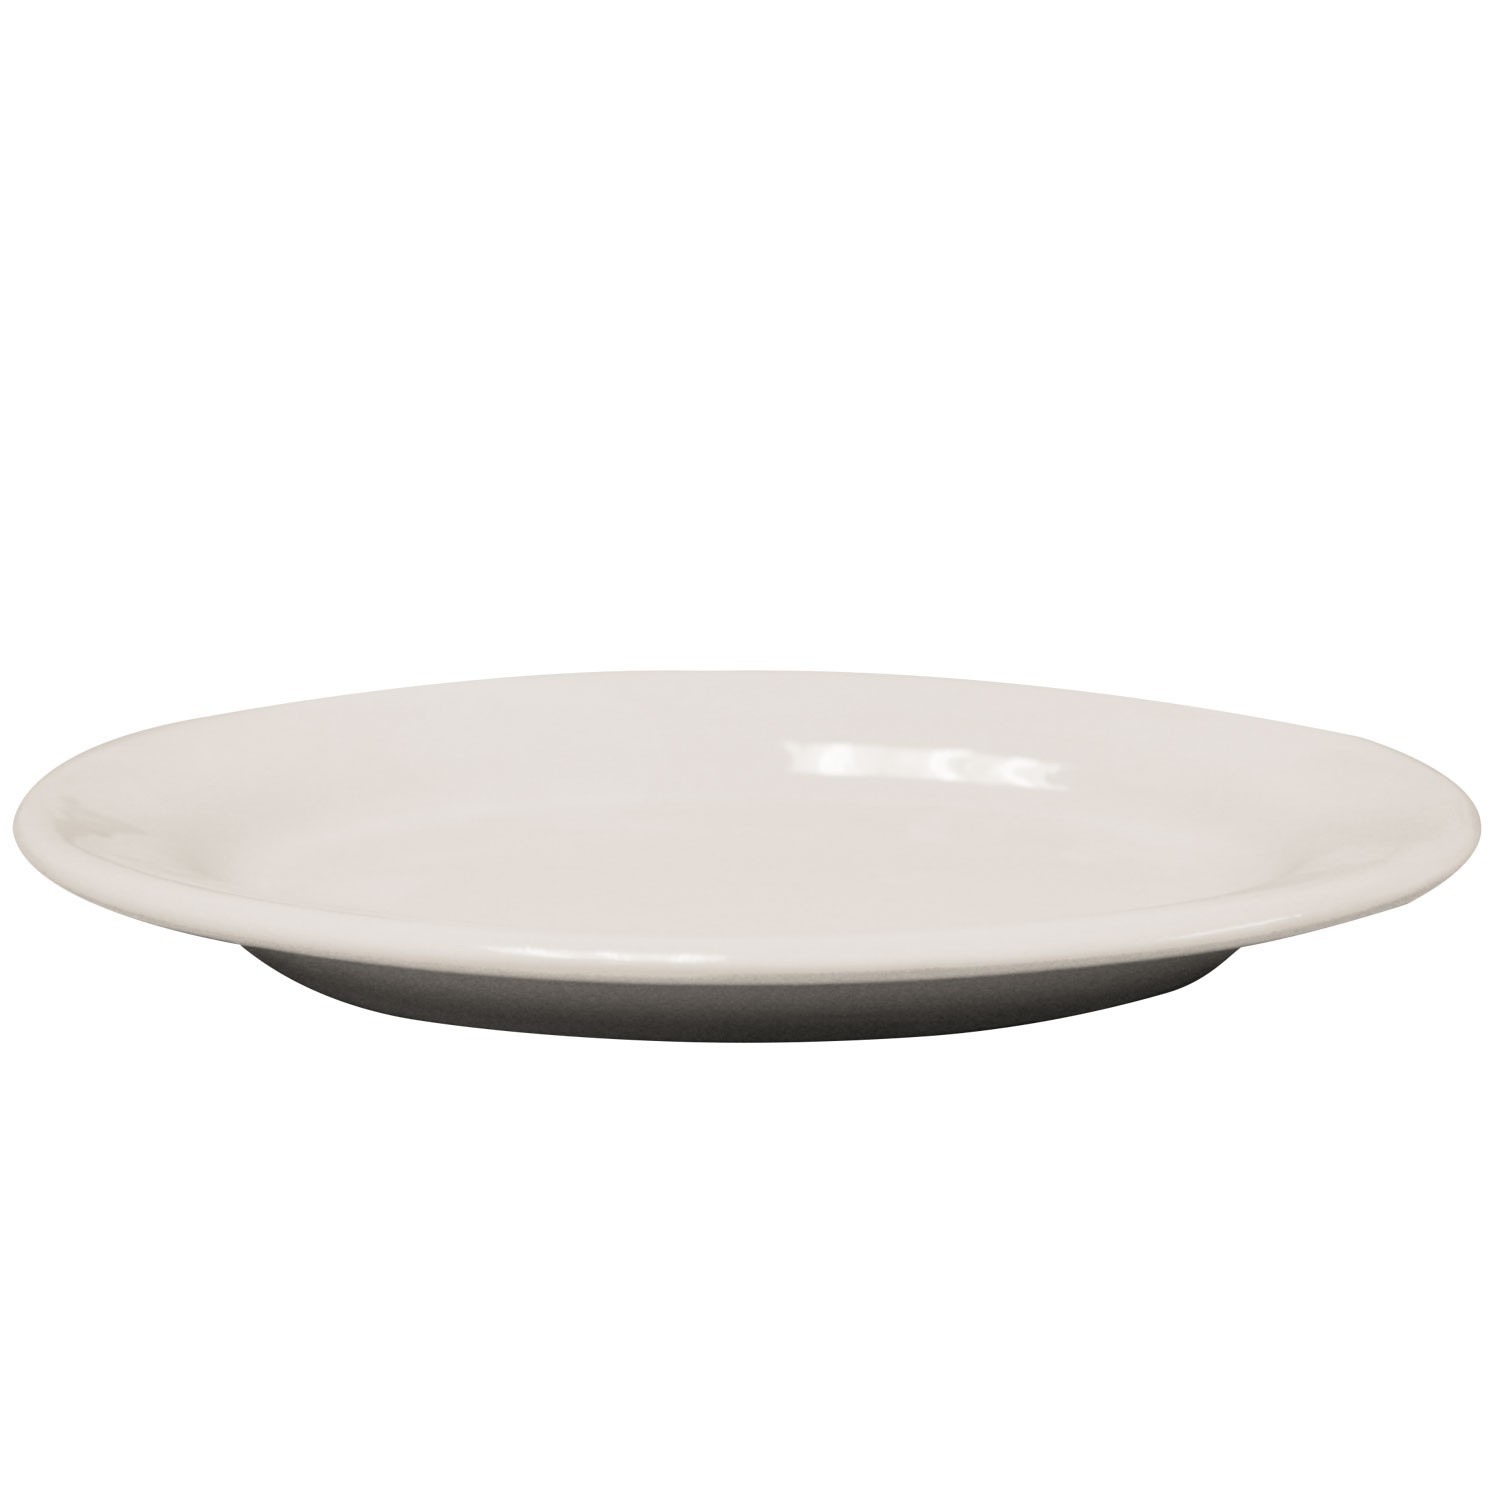 Vertex China BRE-13 Buckingham Platter 11-1/2